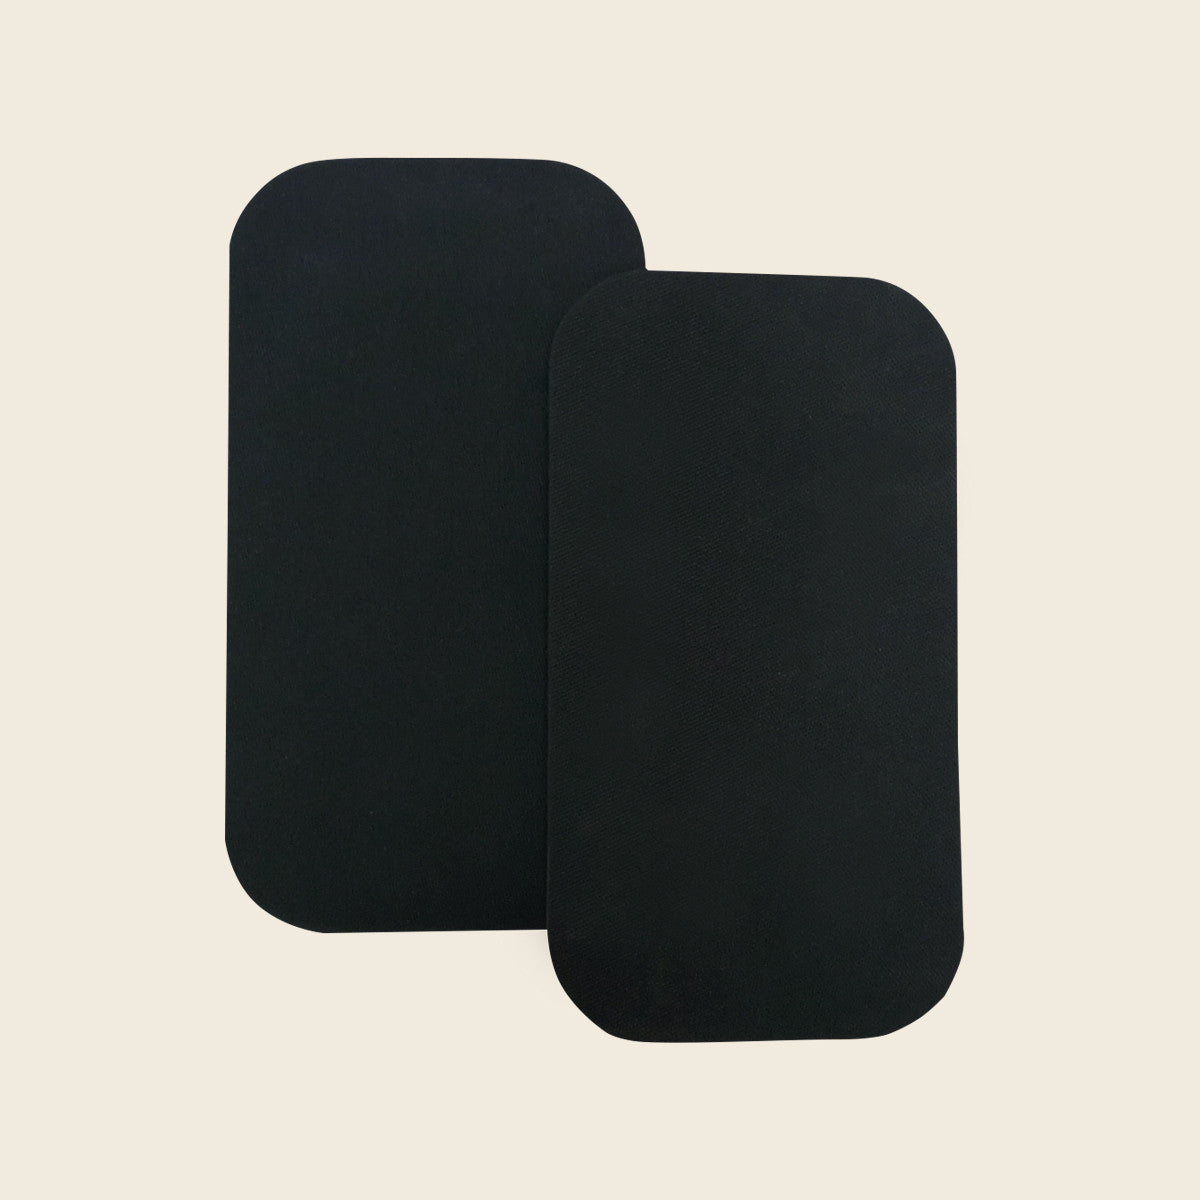 GRATZ PILATES RUBBER PADS